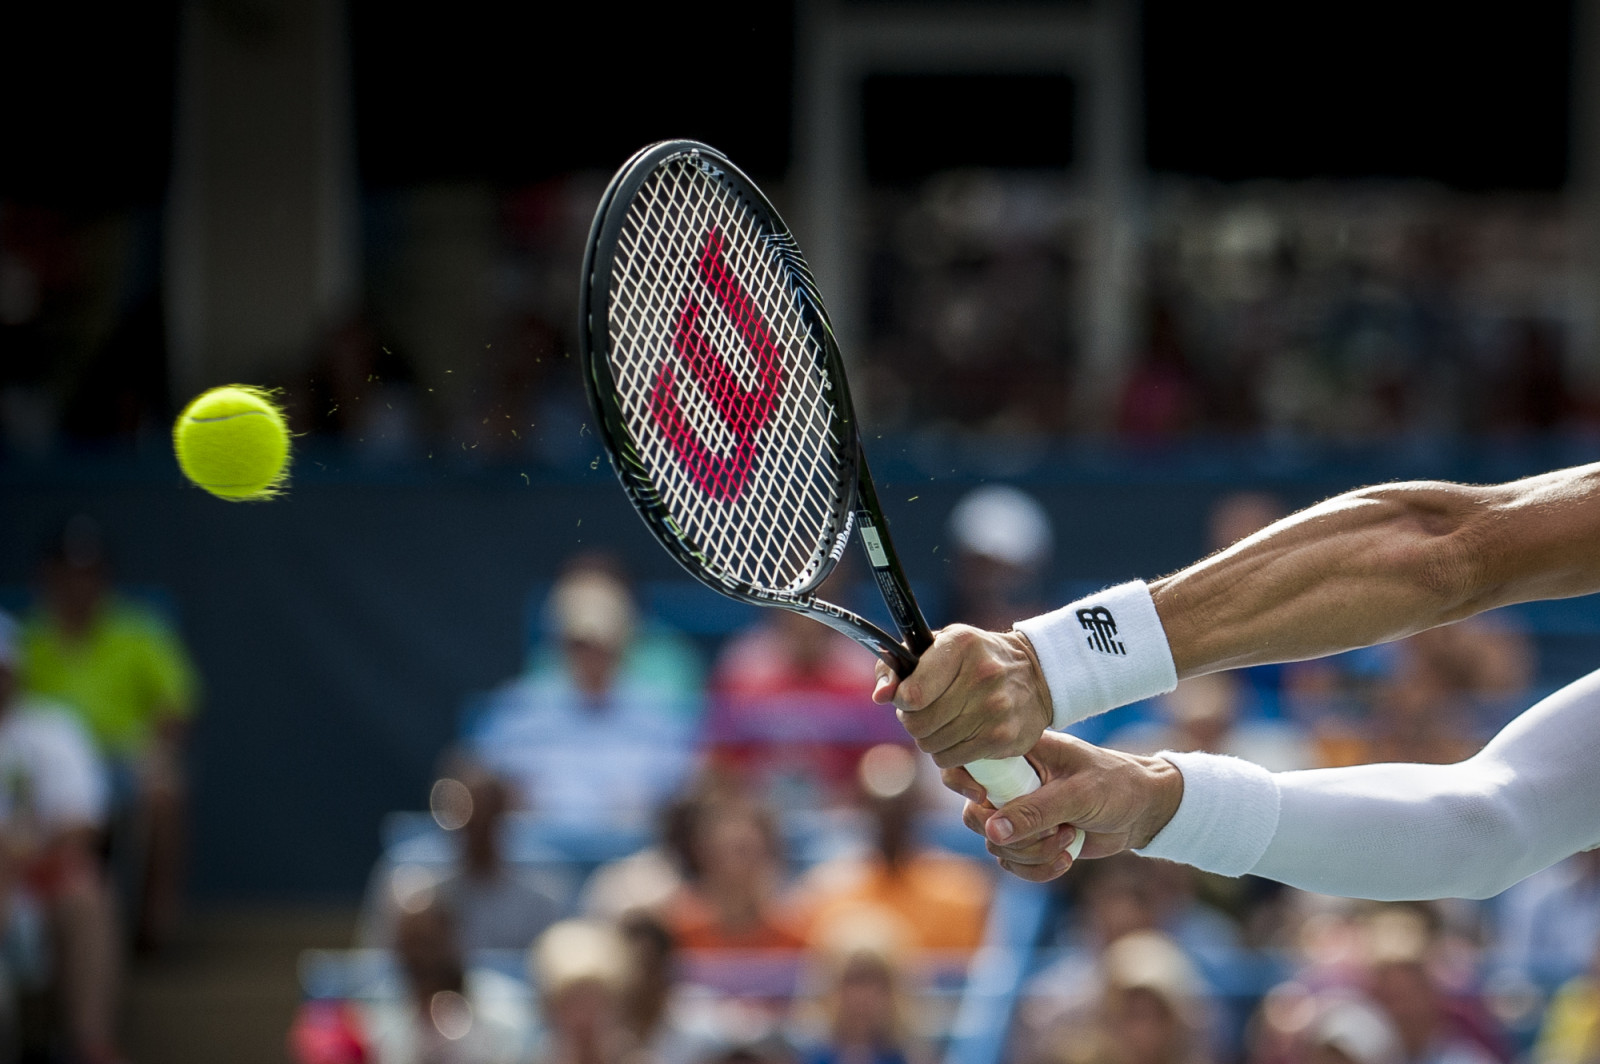 Milos Raonic of Canada returns a shot to Vasek Pospisil of Canada during their finals singles match at the Citi Open ATP tennis tournament in Washington, DC, USA, 3 Aug 2014. Raonic won the men's final 6-1, 6-4.